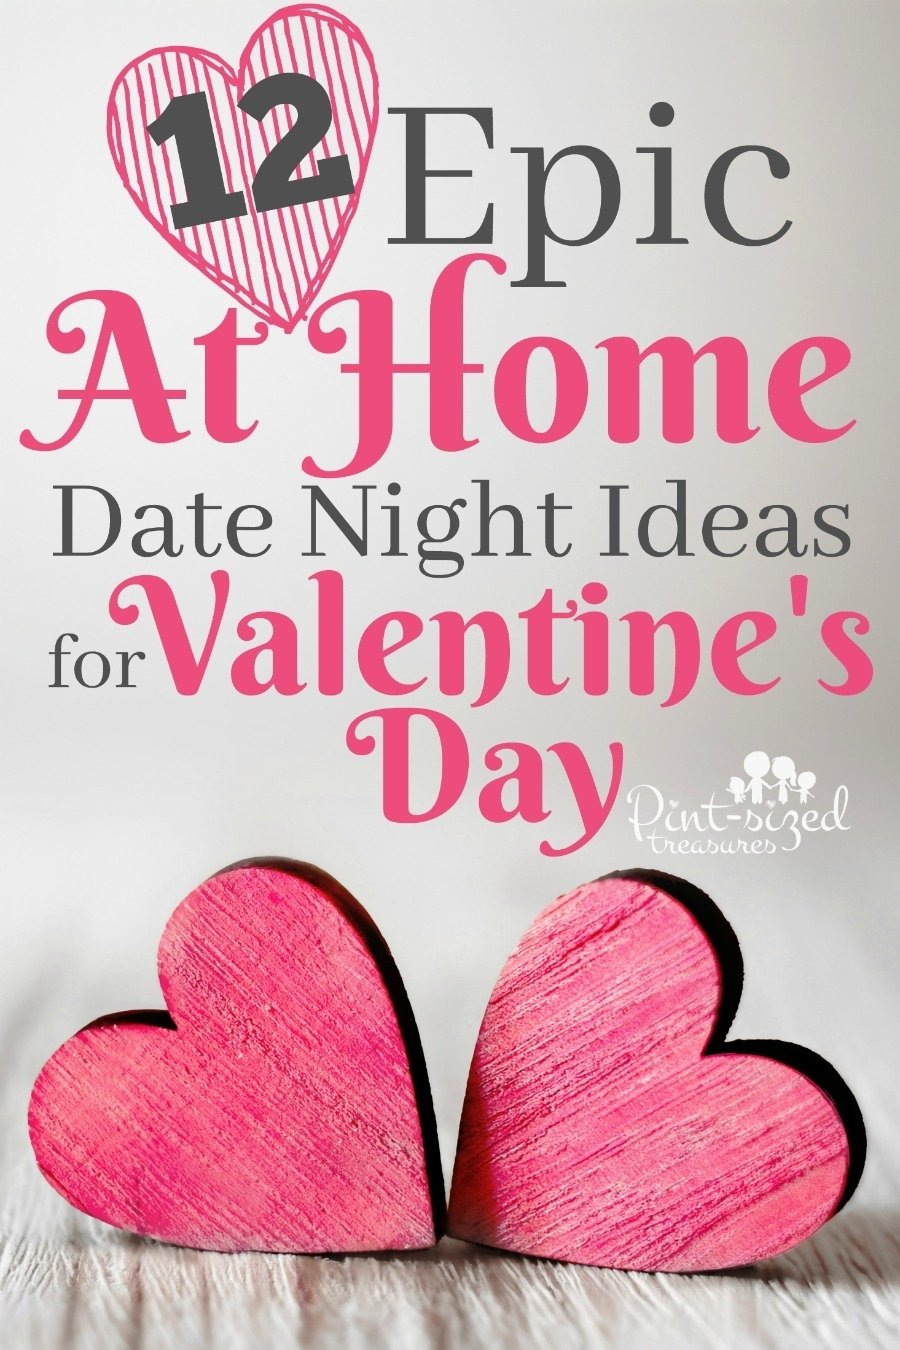 10 Fantastic At Home Valentines Day Ideas 12 epic at home date night ideas for valentines day c2b7 pint sized 2